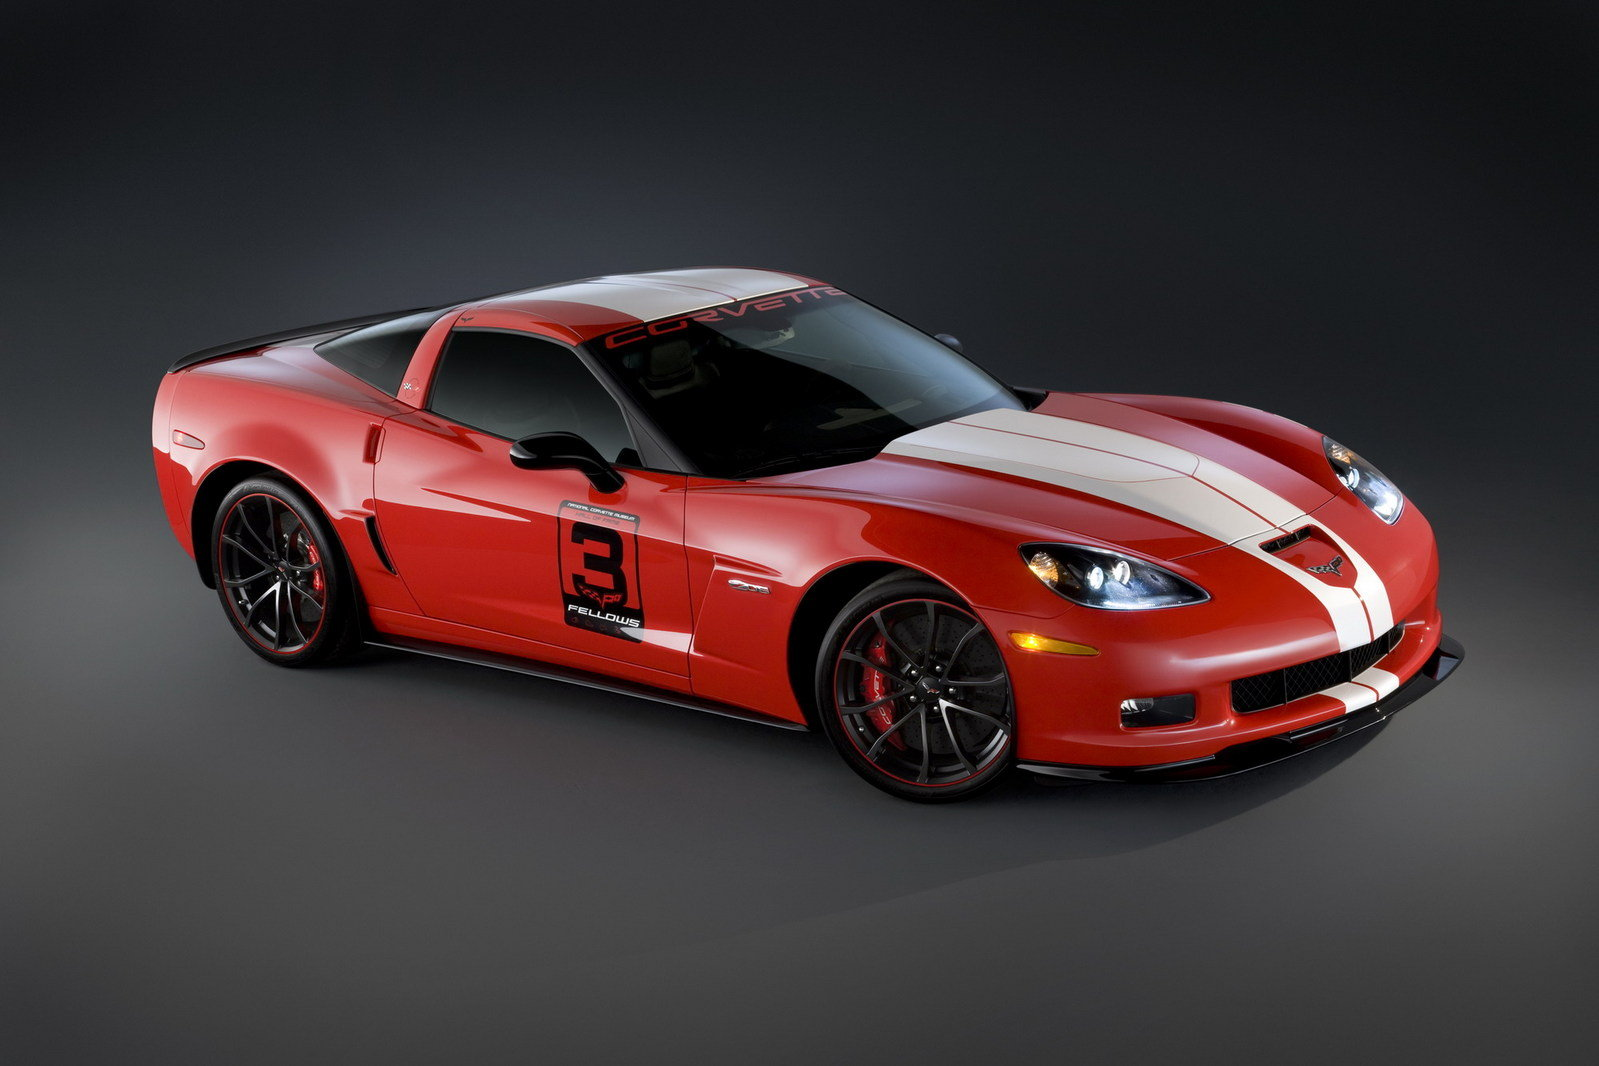 National Corvette Museum >> 2012 Chevrolet Corvette Z06 Ron Fellows SEMA/Spring Mountain Special Edition | Top Speed